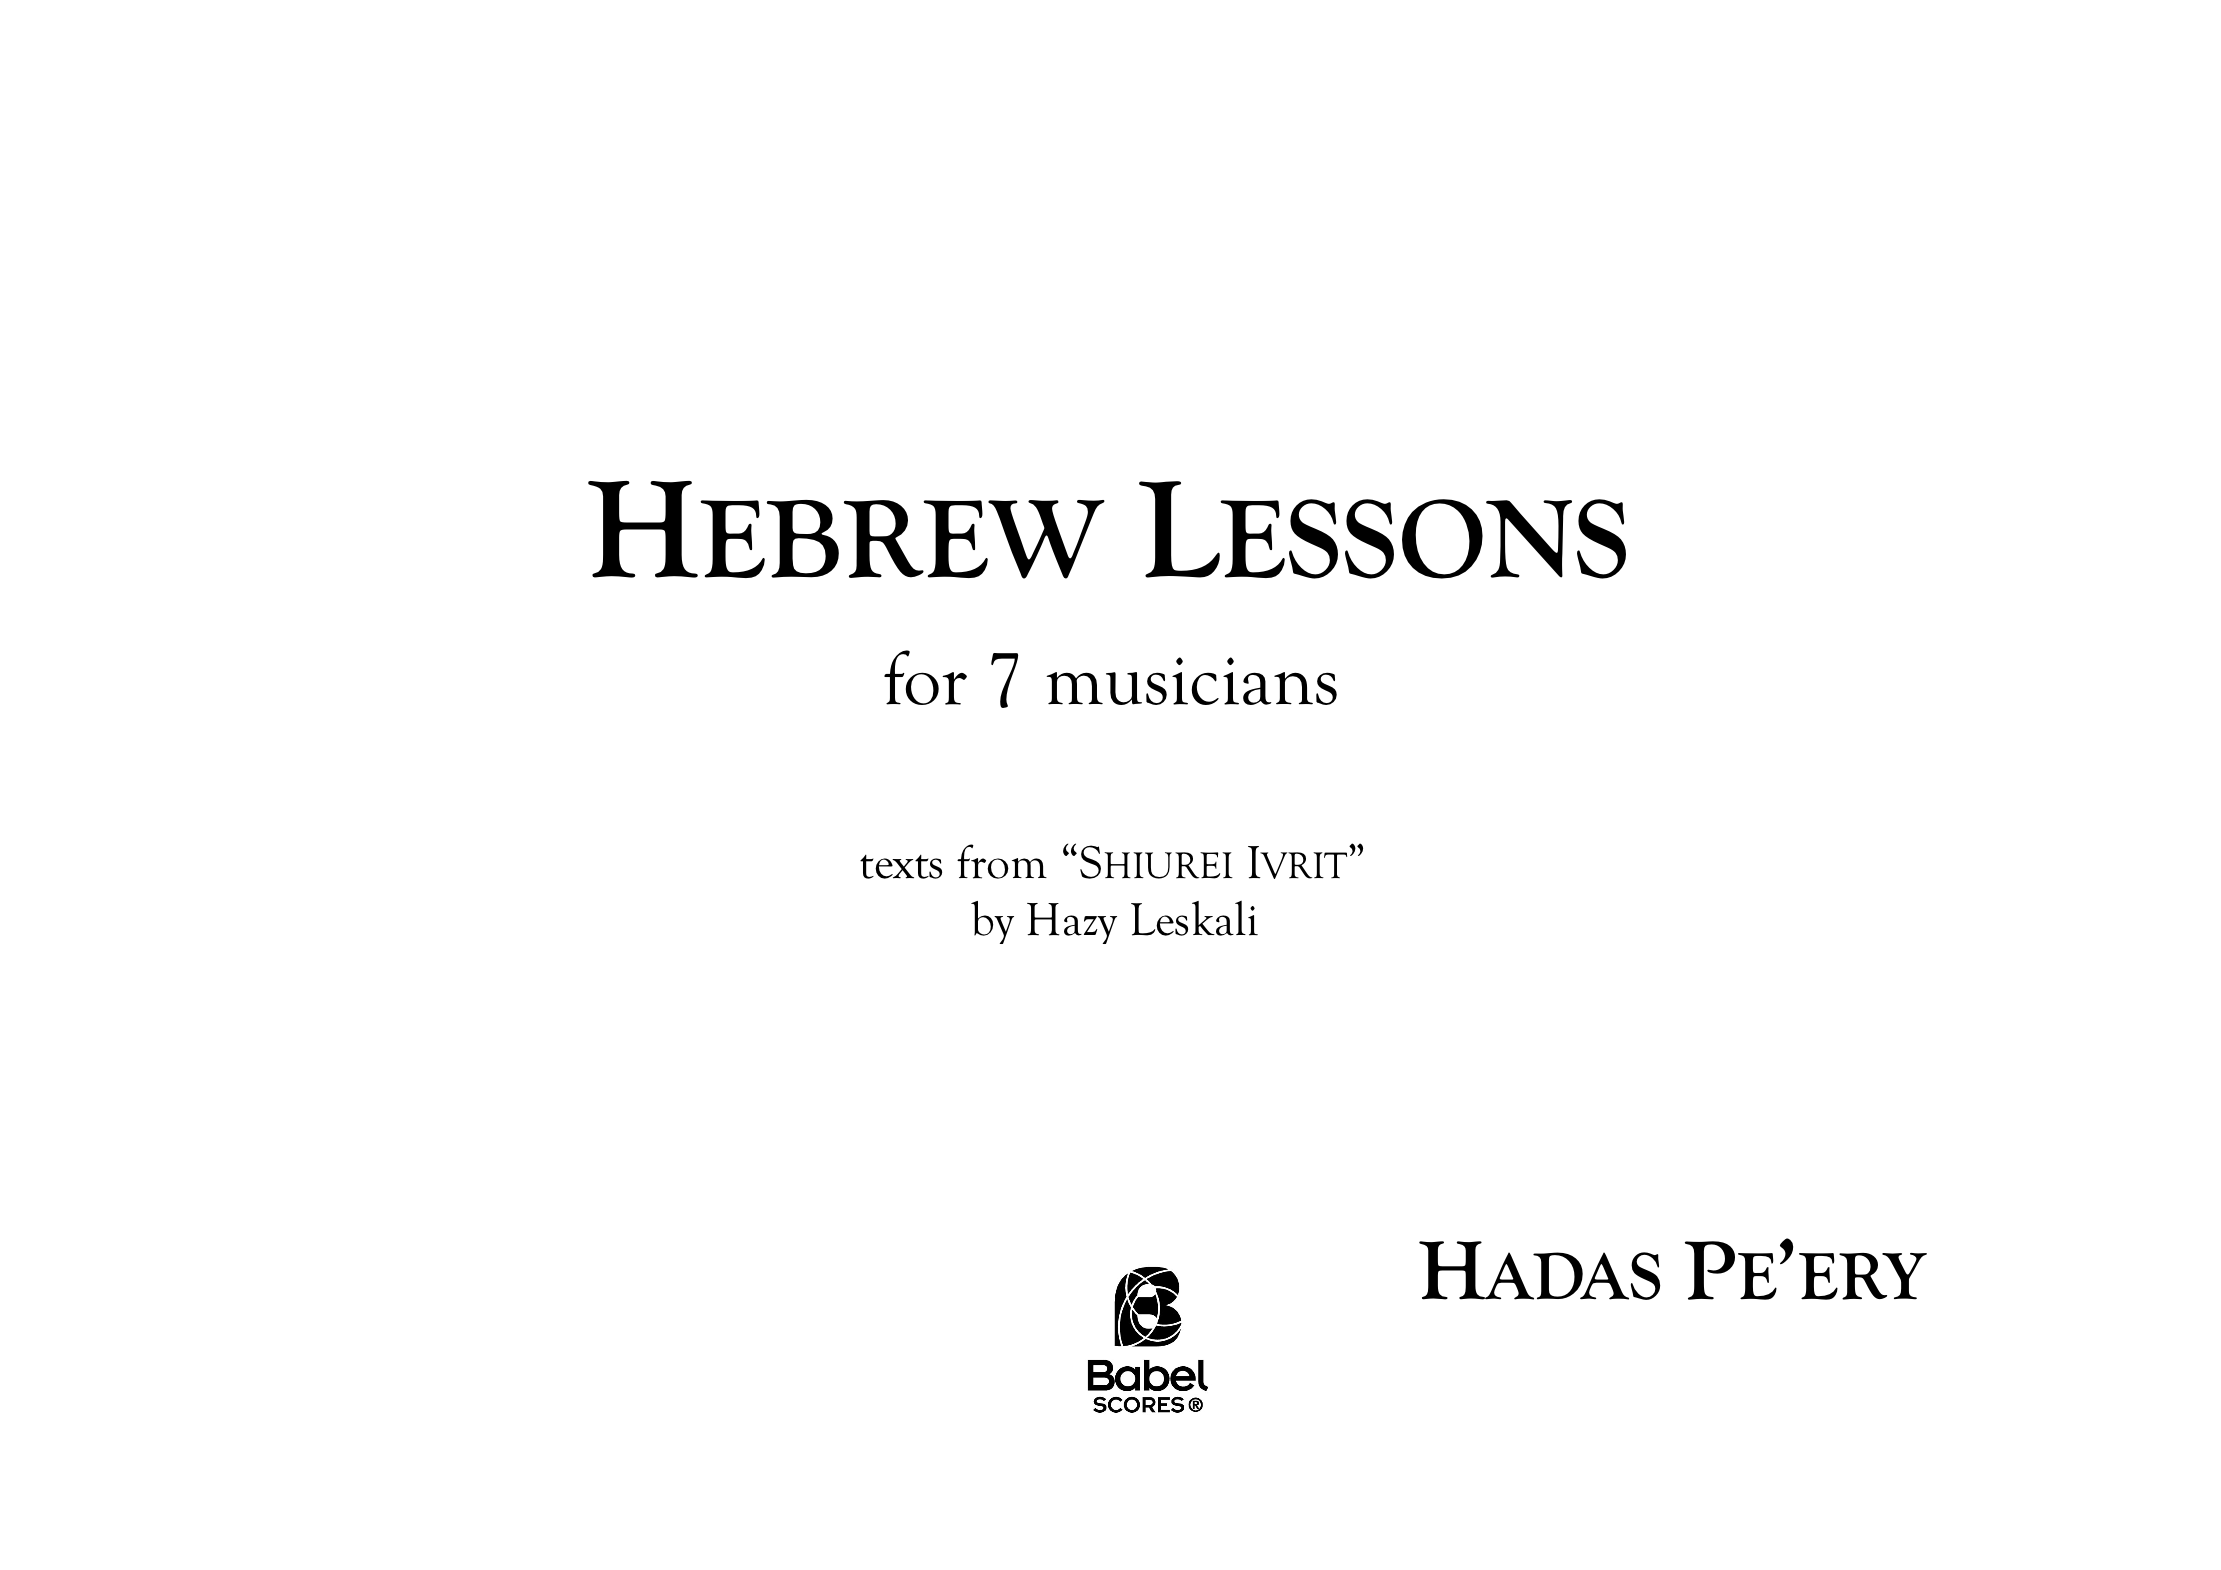 HebrewLessons_Hadas_Official z